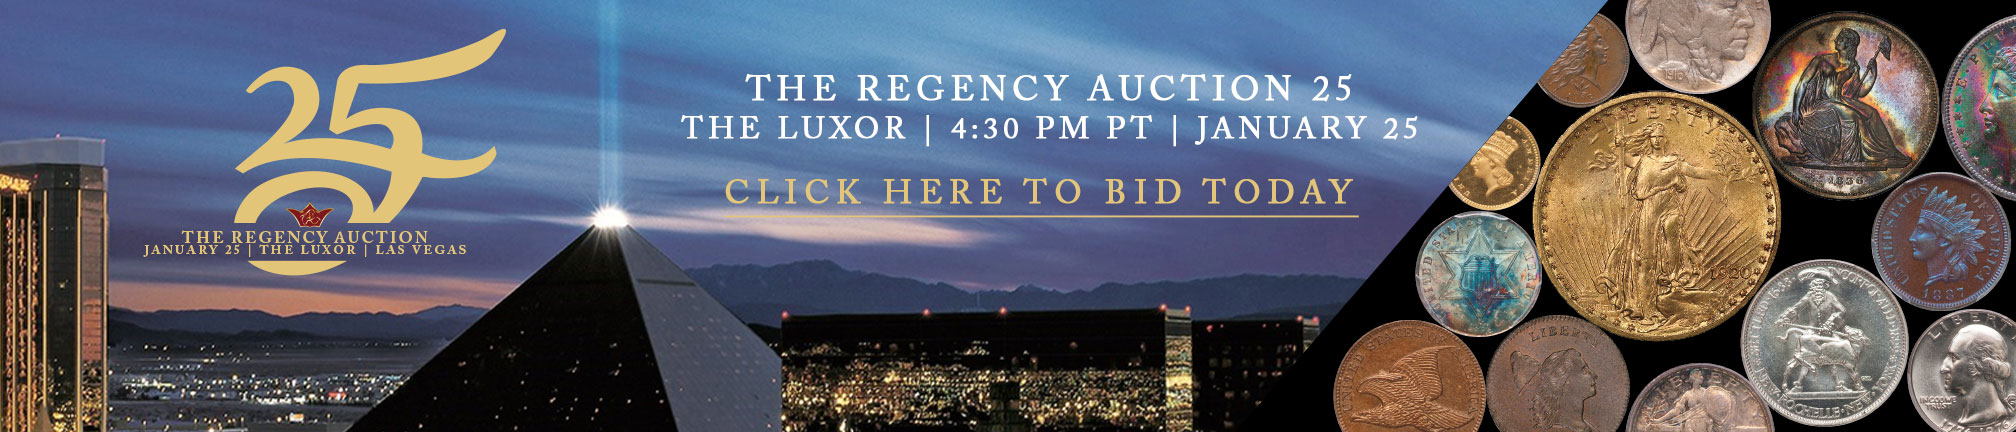 Regency Auction 25 Bid Banner2